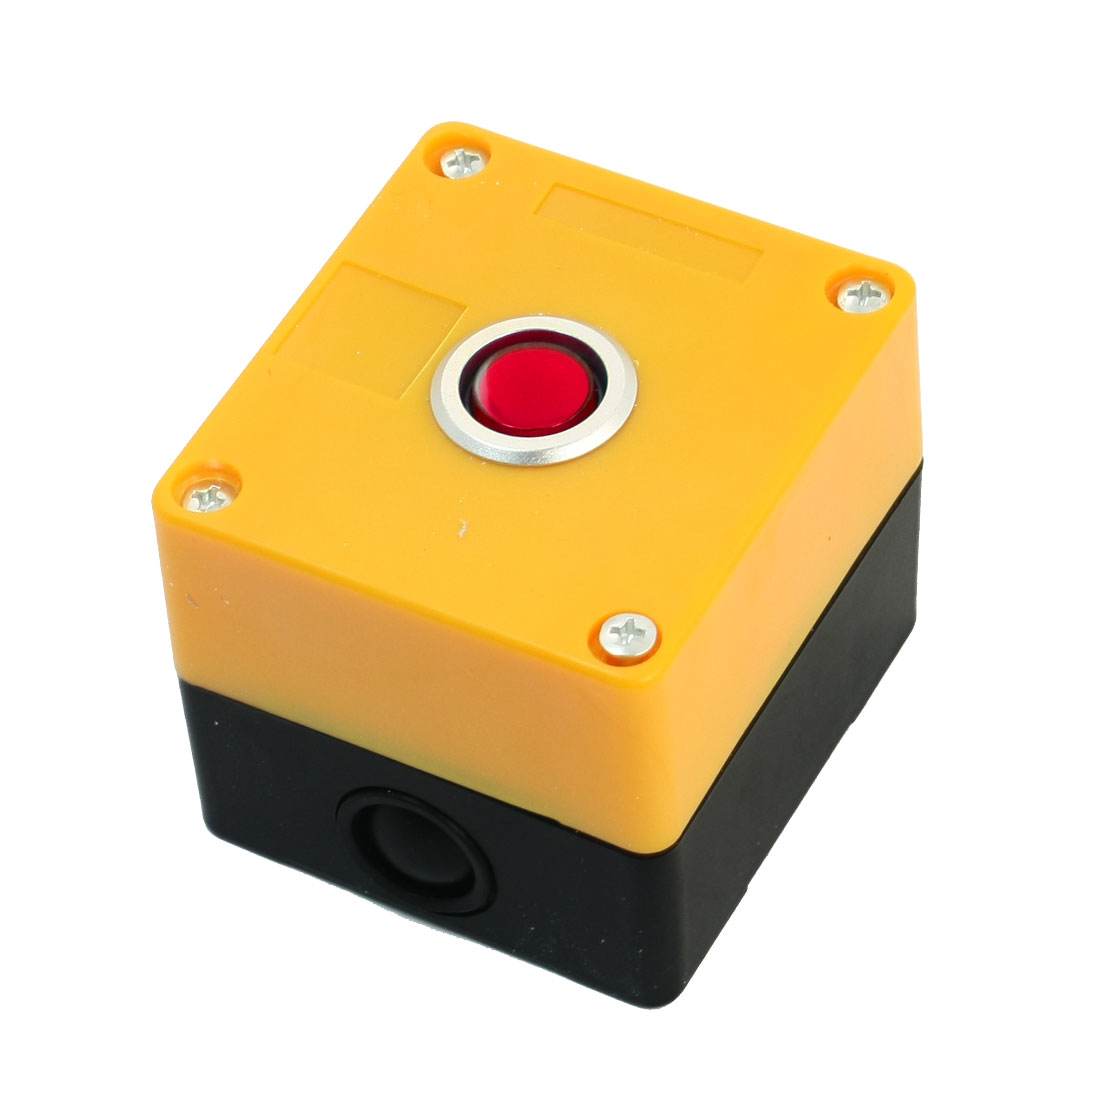 AC 220V 5A SPDT 5-Pin 1NO 1NC Momentary Red Pilot Lamp Rectangle Yellow Plastic Push Button Station Switch Control Box